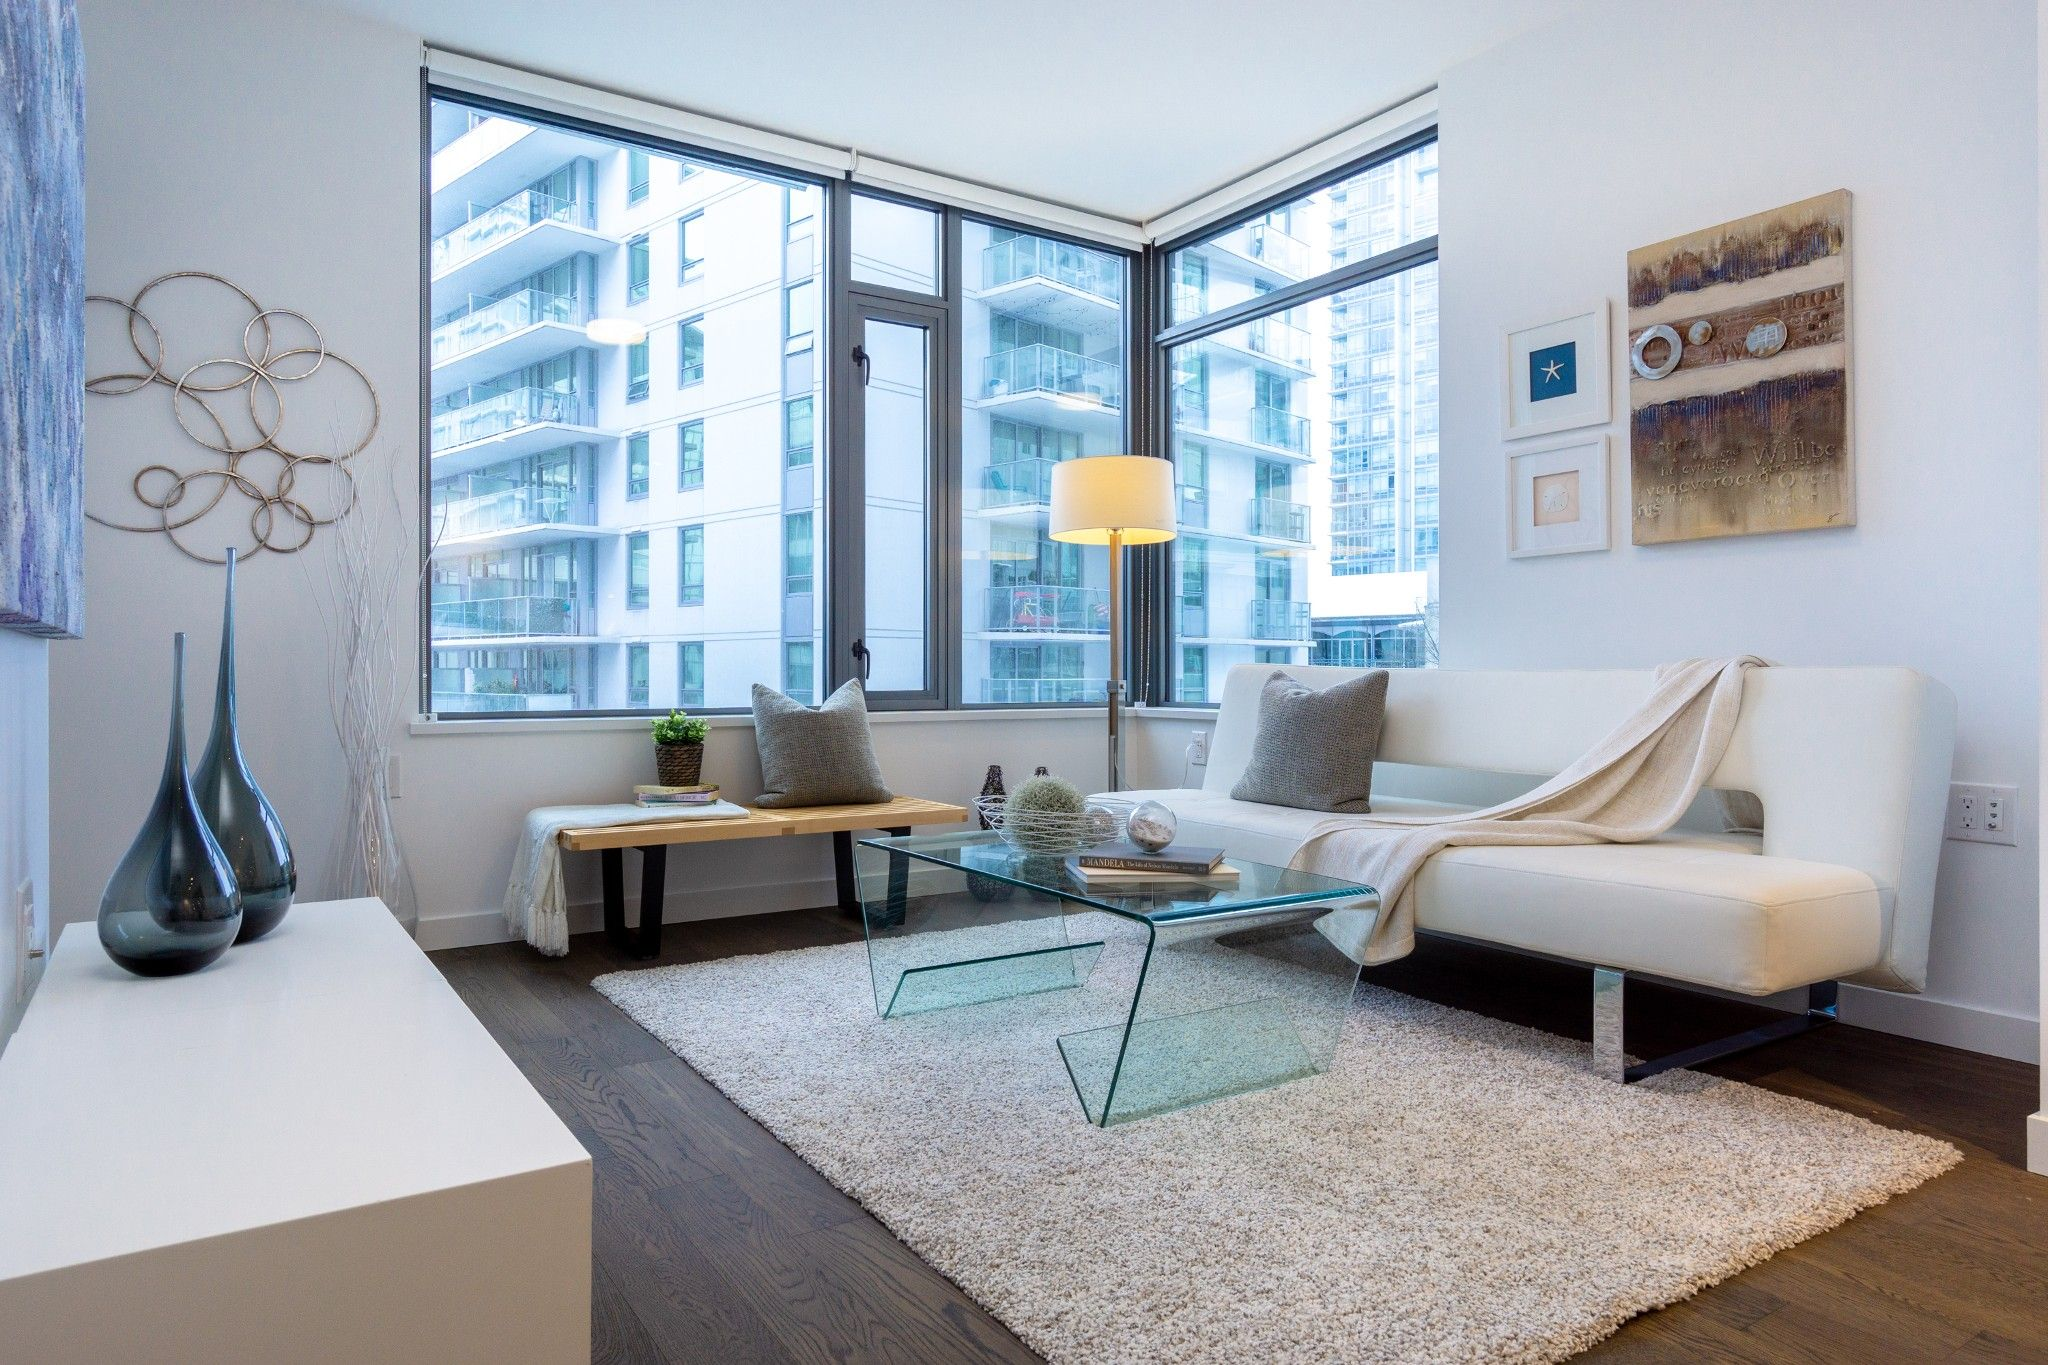 """Main Photo: 409 1688 PULLMAN PORTER Street in Vancouver: Mount Pleasant VE Condo for sale in """"NAVIO AT THE CREEK"""" (Vancouver East)  : MLS®# R2428474"""